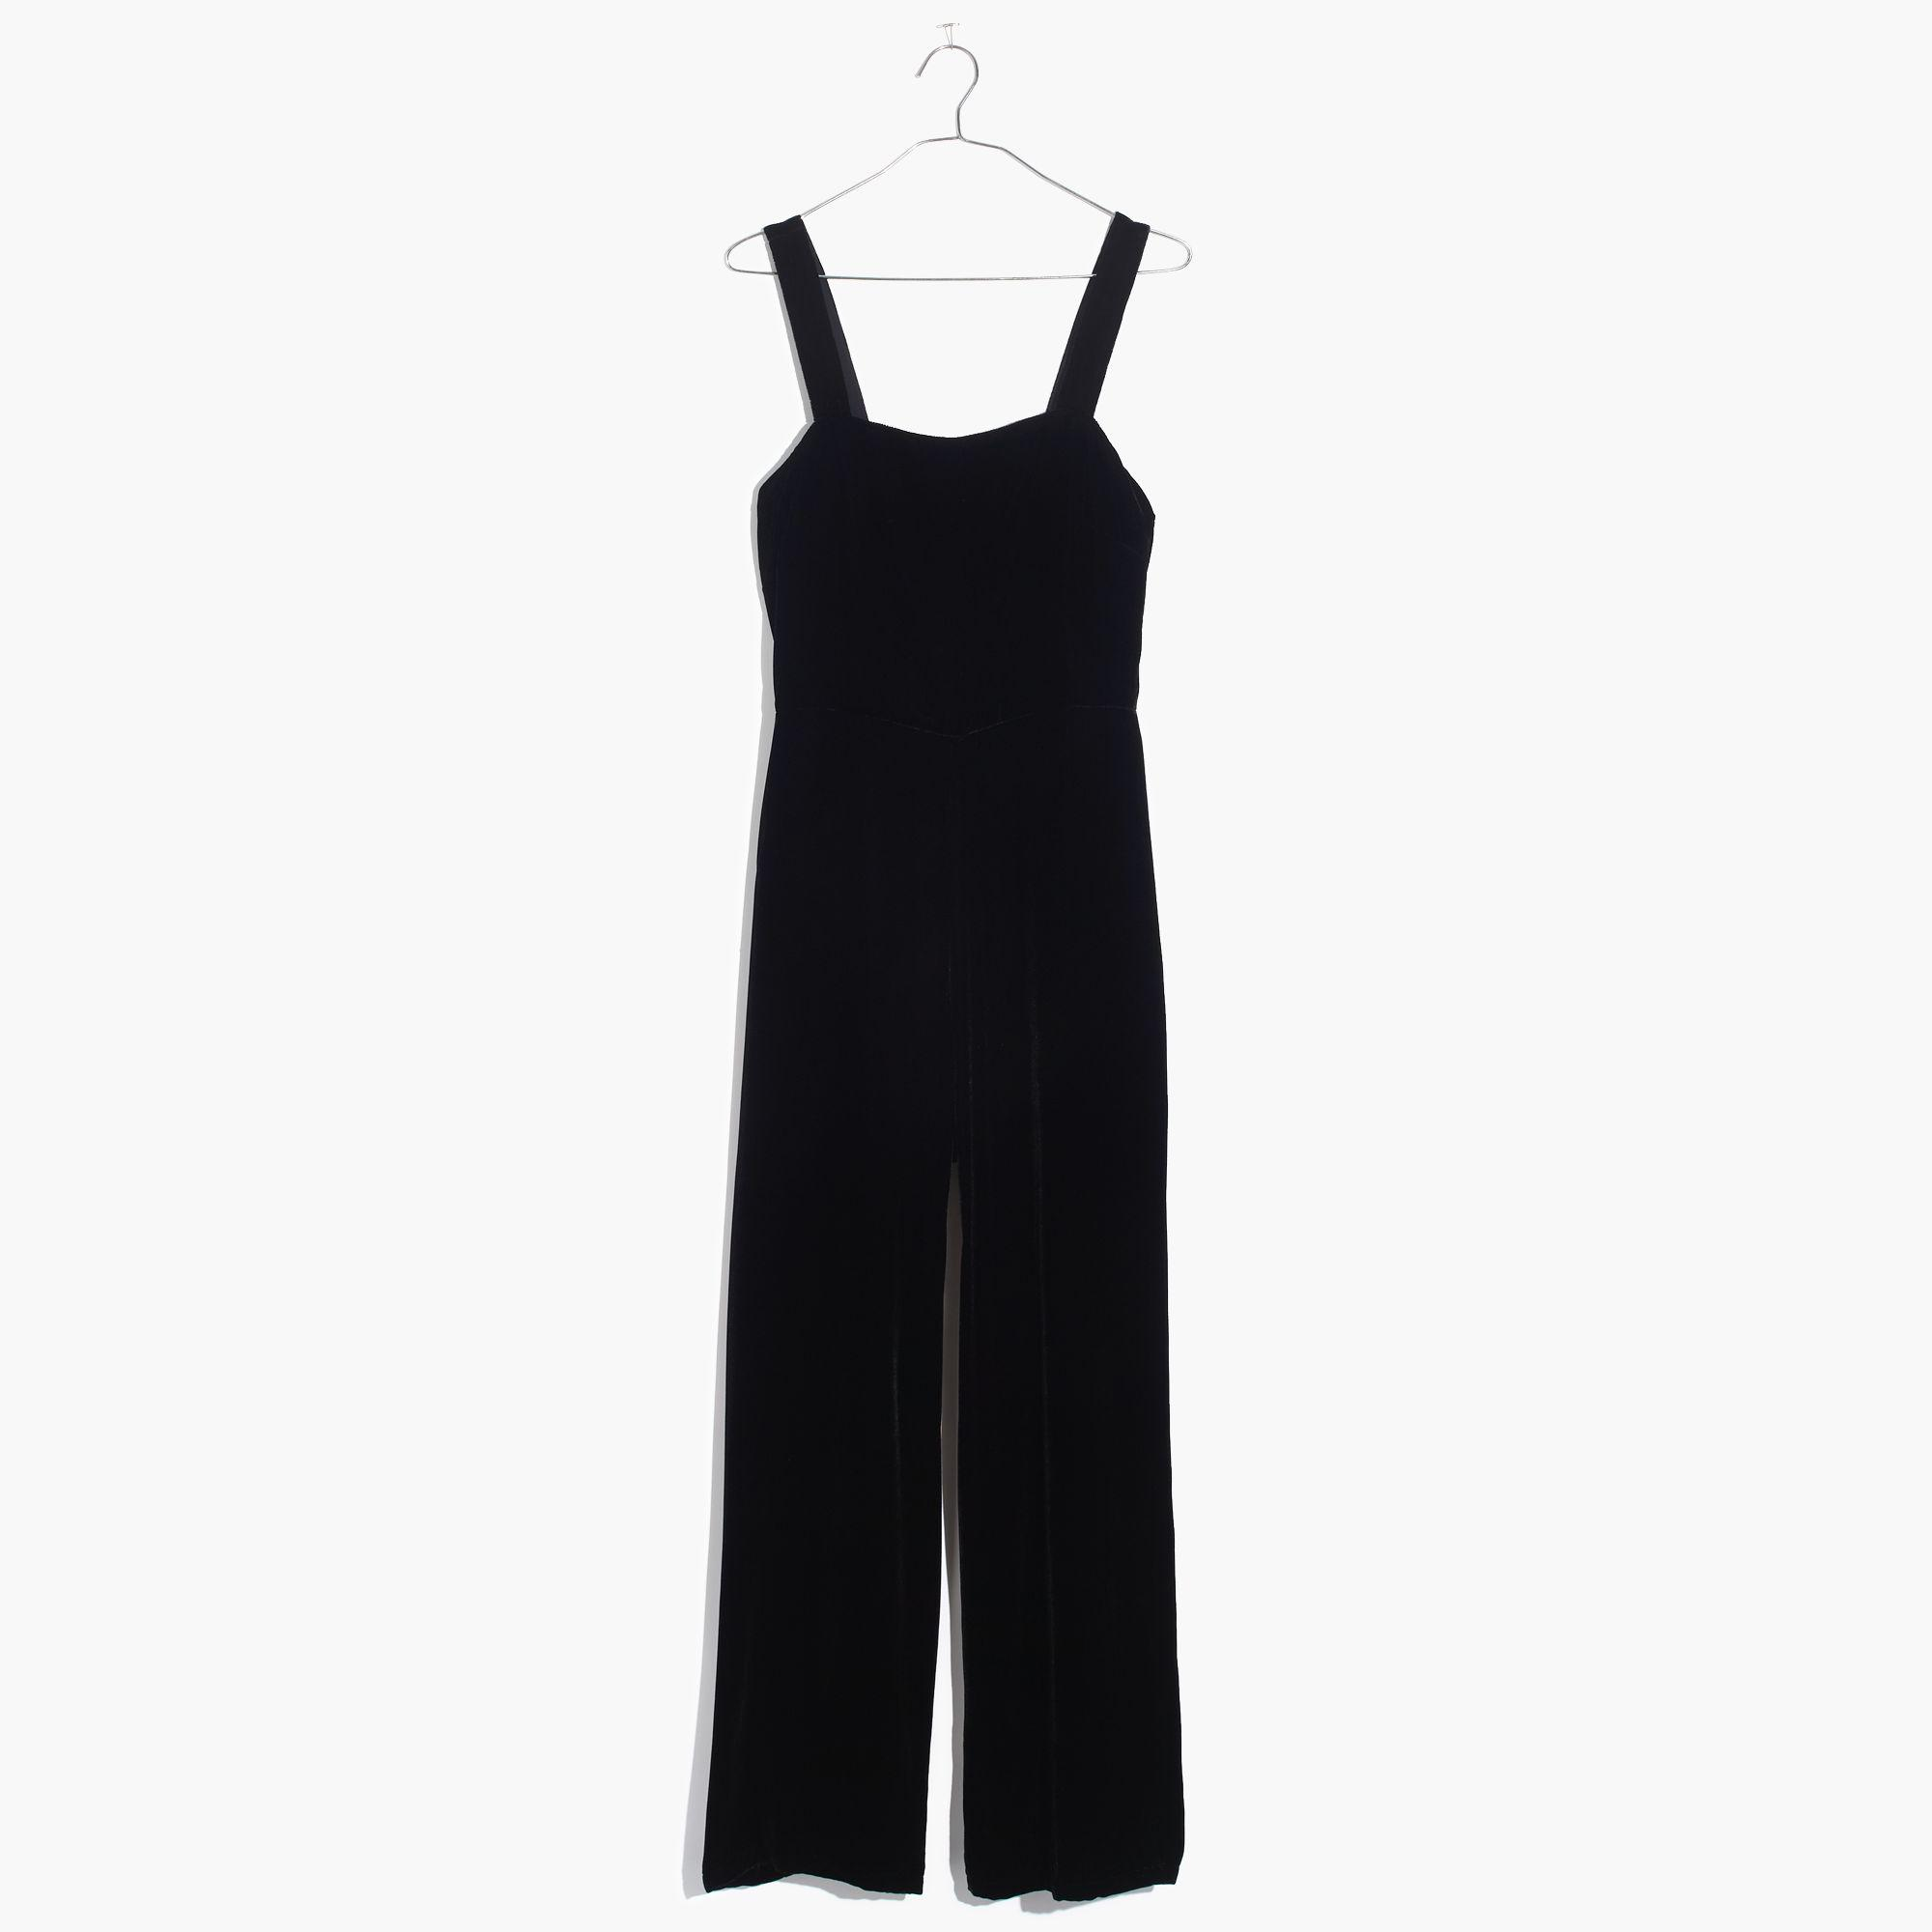 af8b32656b8 Lyst - Madewell Crushed Velvet Wide-leg Jumpsuit in Black